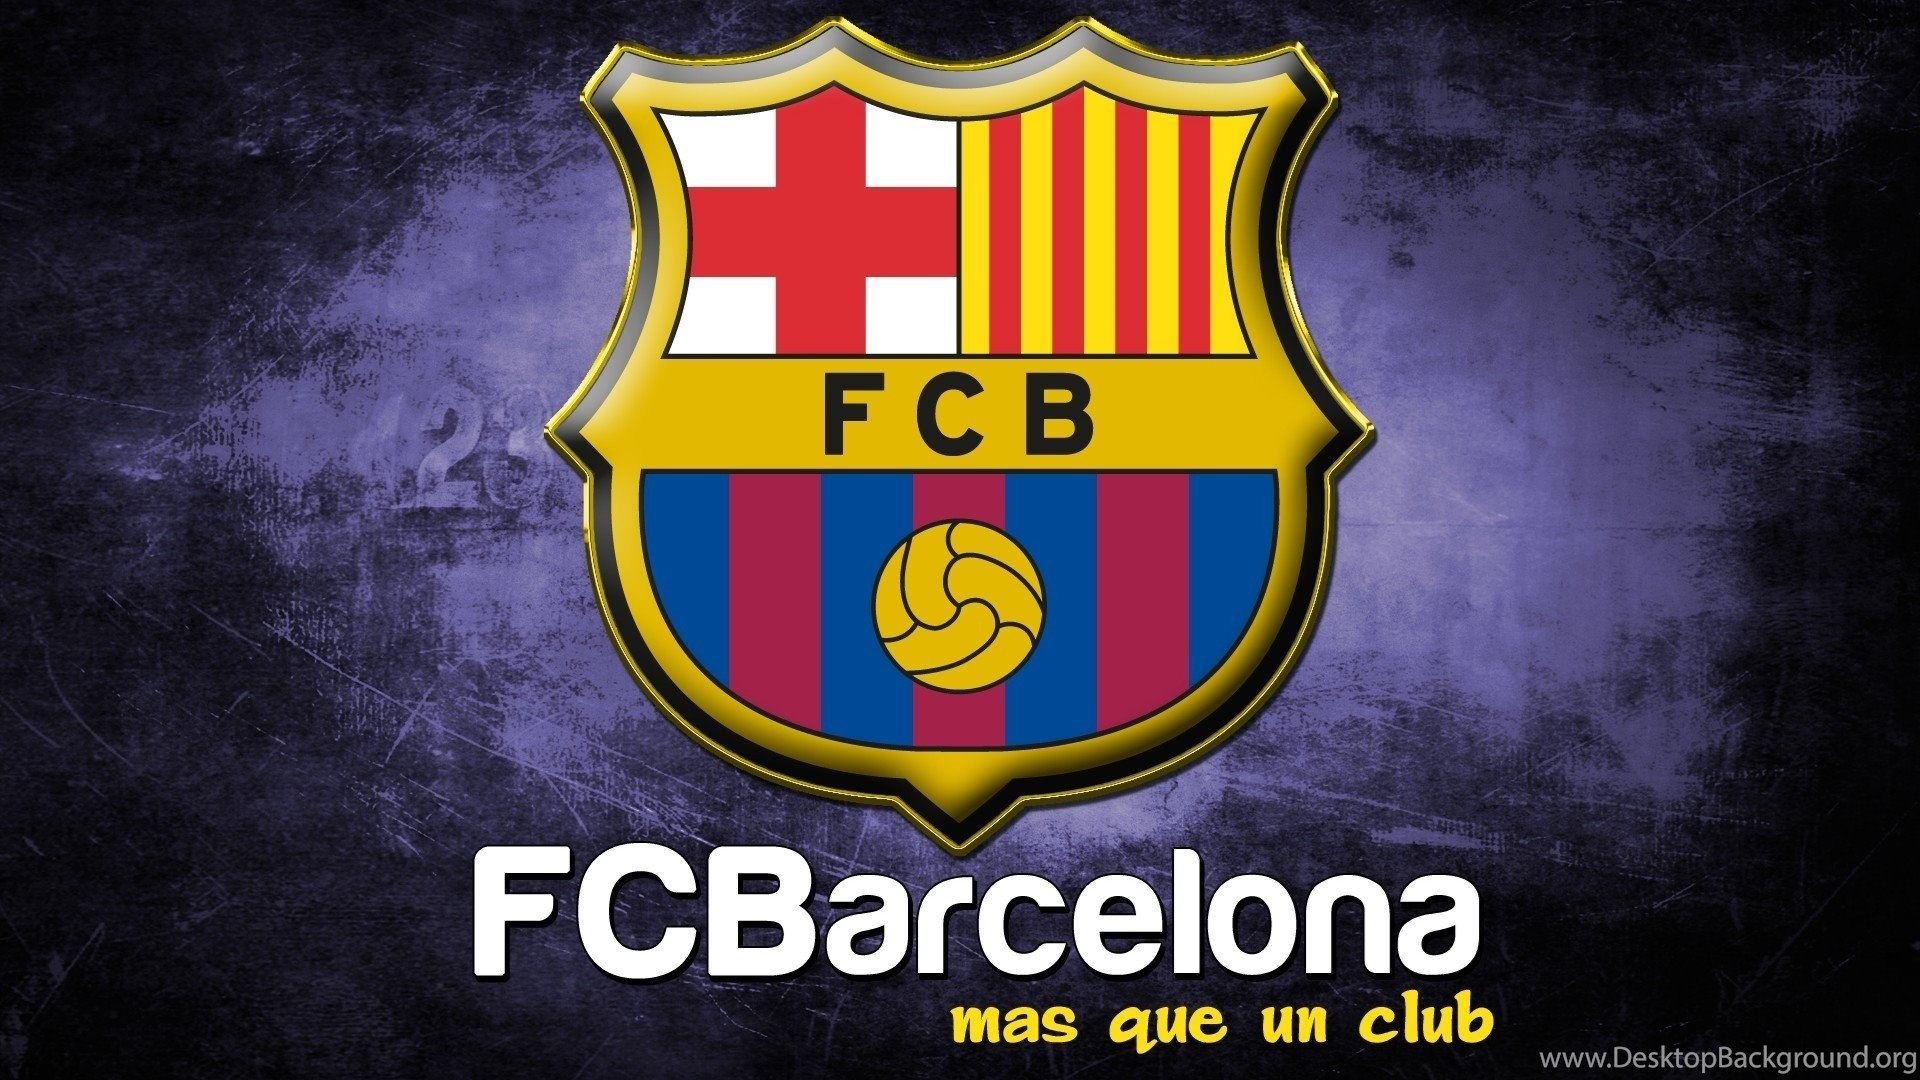 fc barcelona wallpapers for mobile desktop background fc barcelona wallpapers for mobile